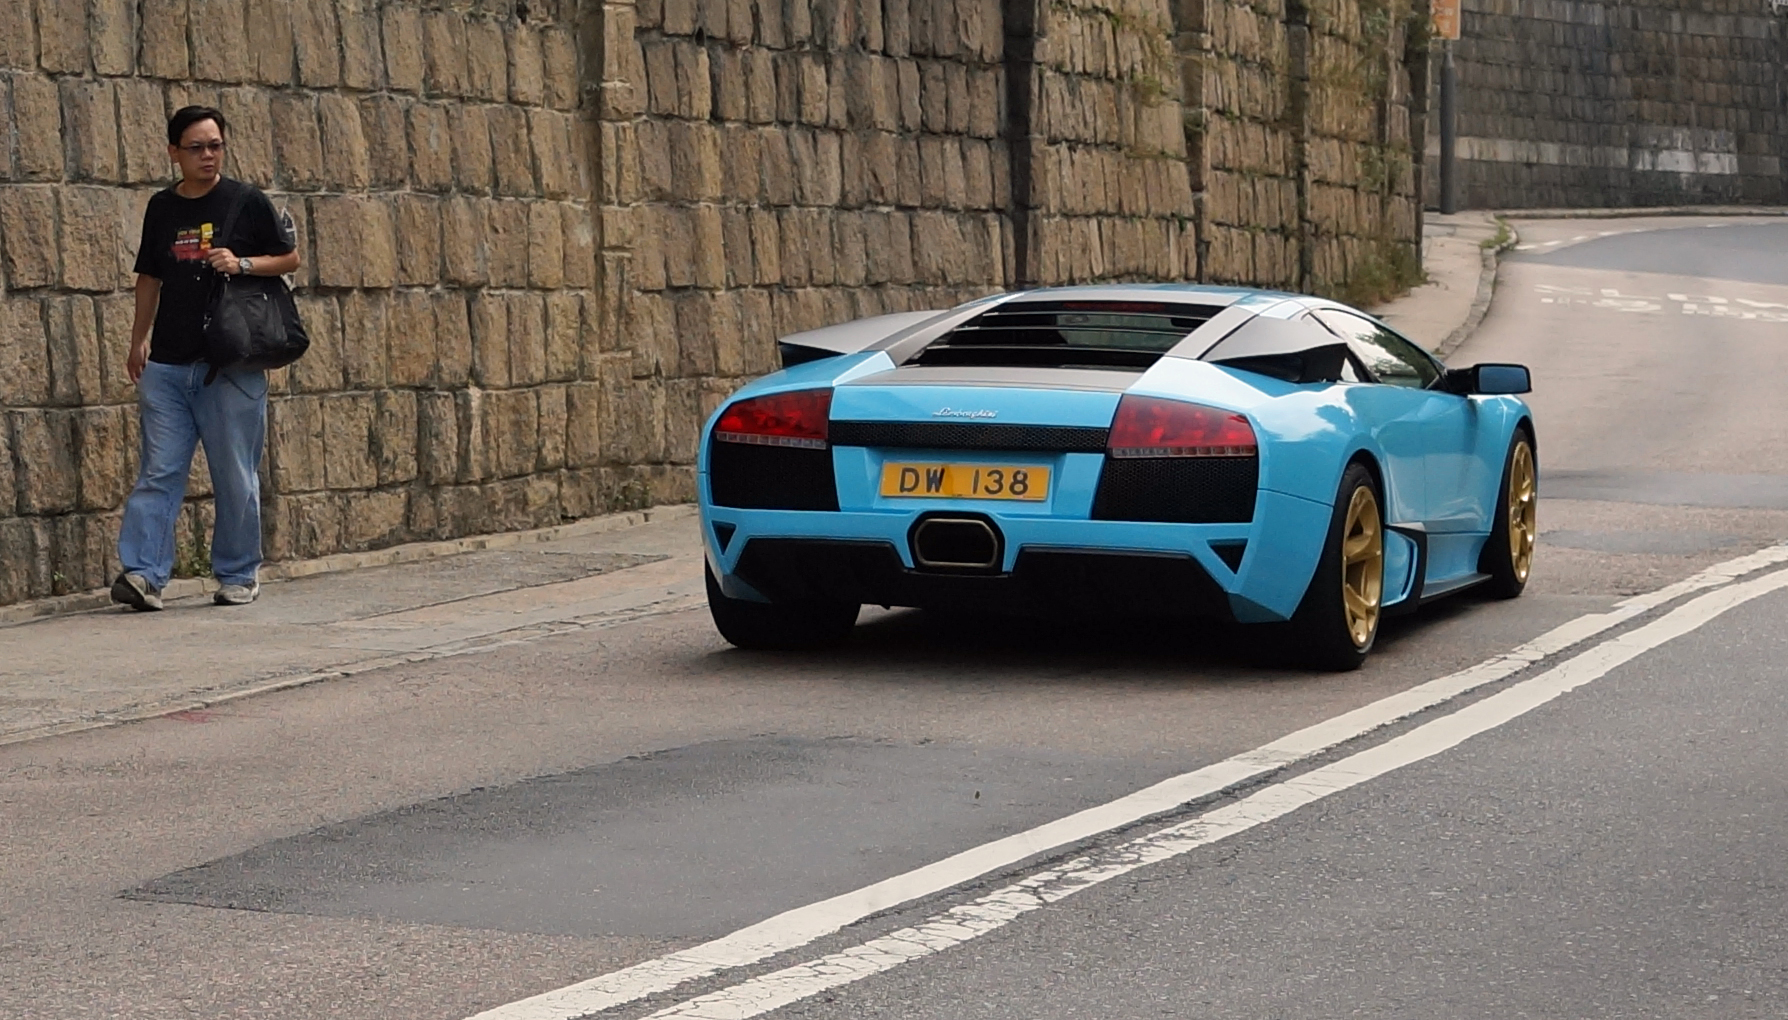 I am not sure about the colour but Lamborghini's still have the power to turn heads even if you don't like cars!